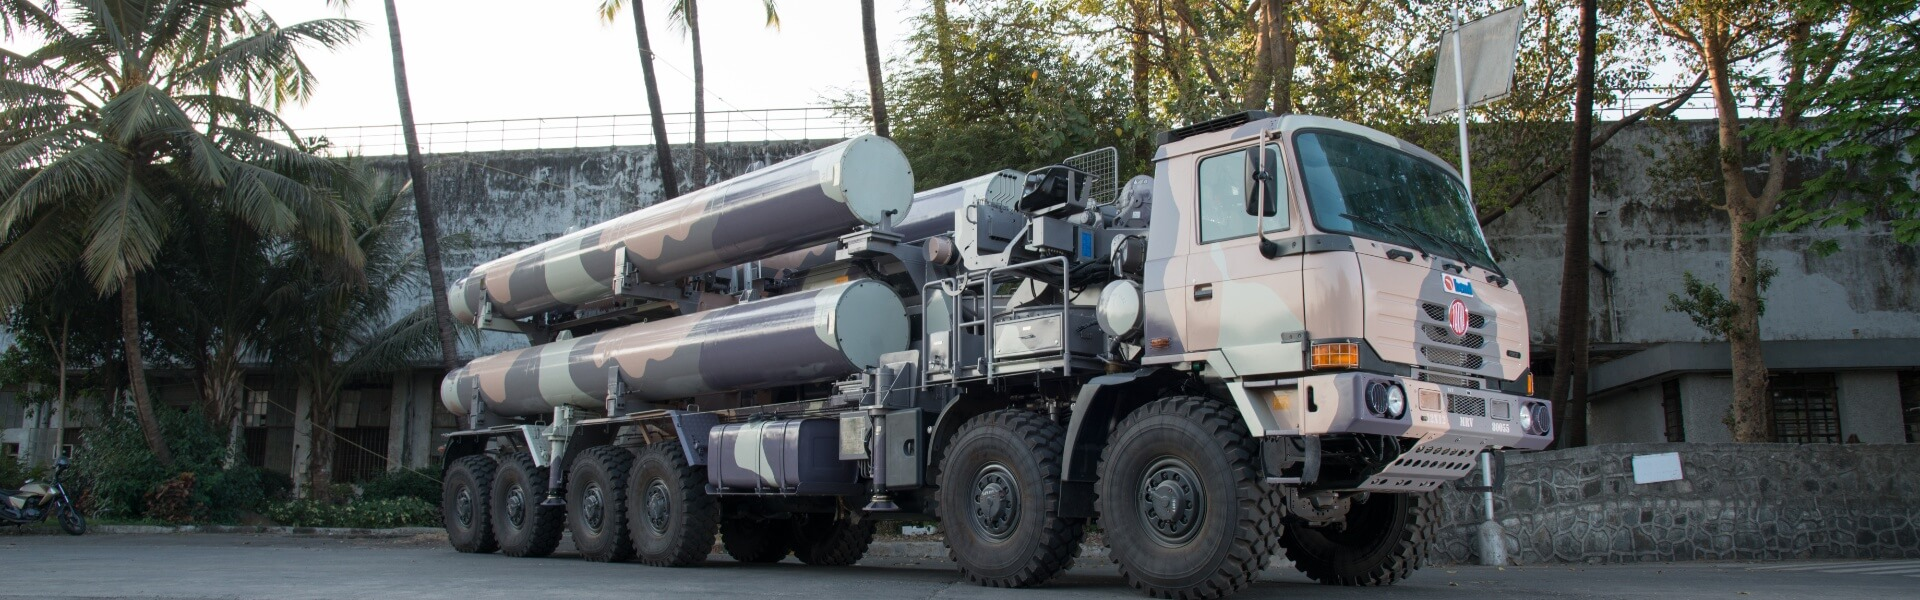 Mobile Replenishment Vehicle - BrahMos